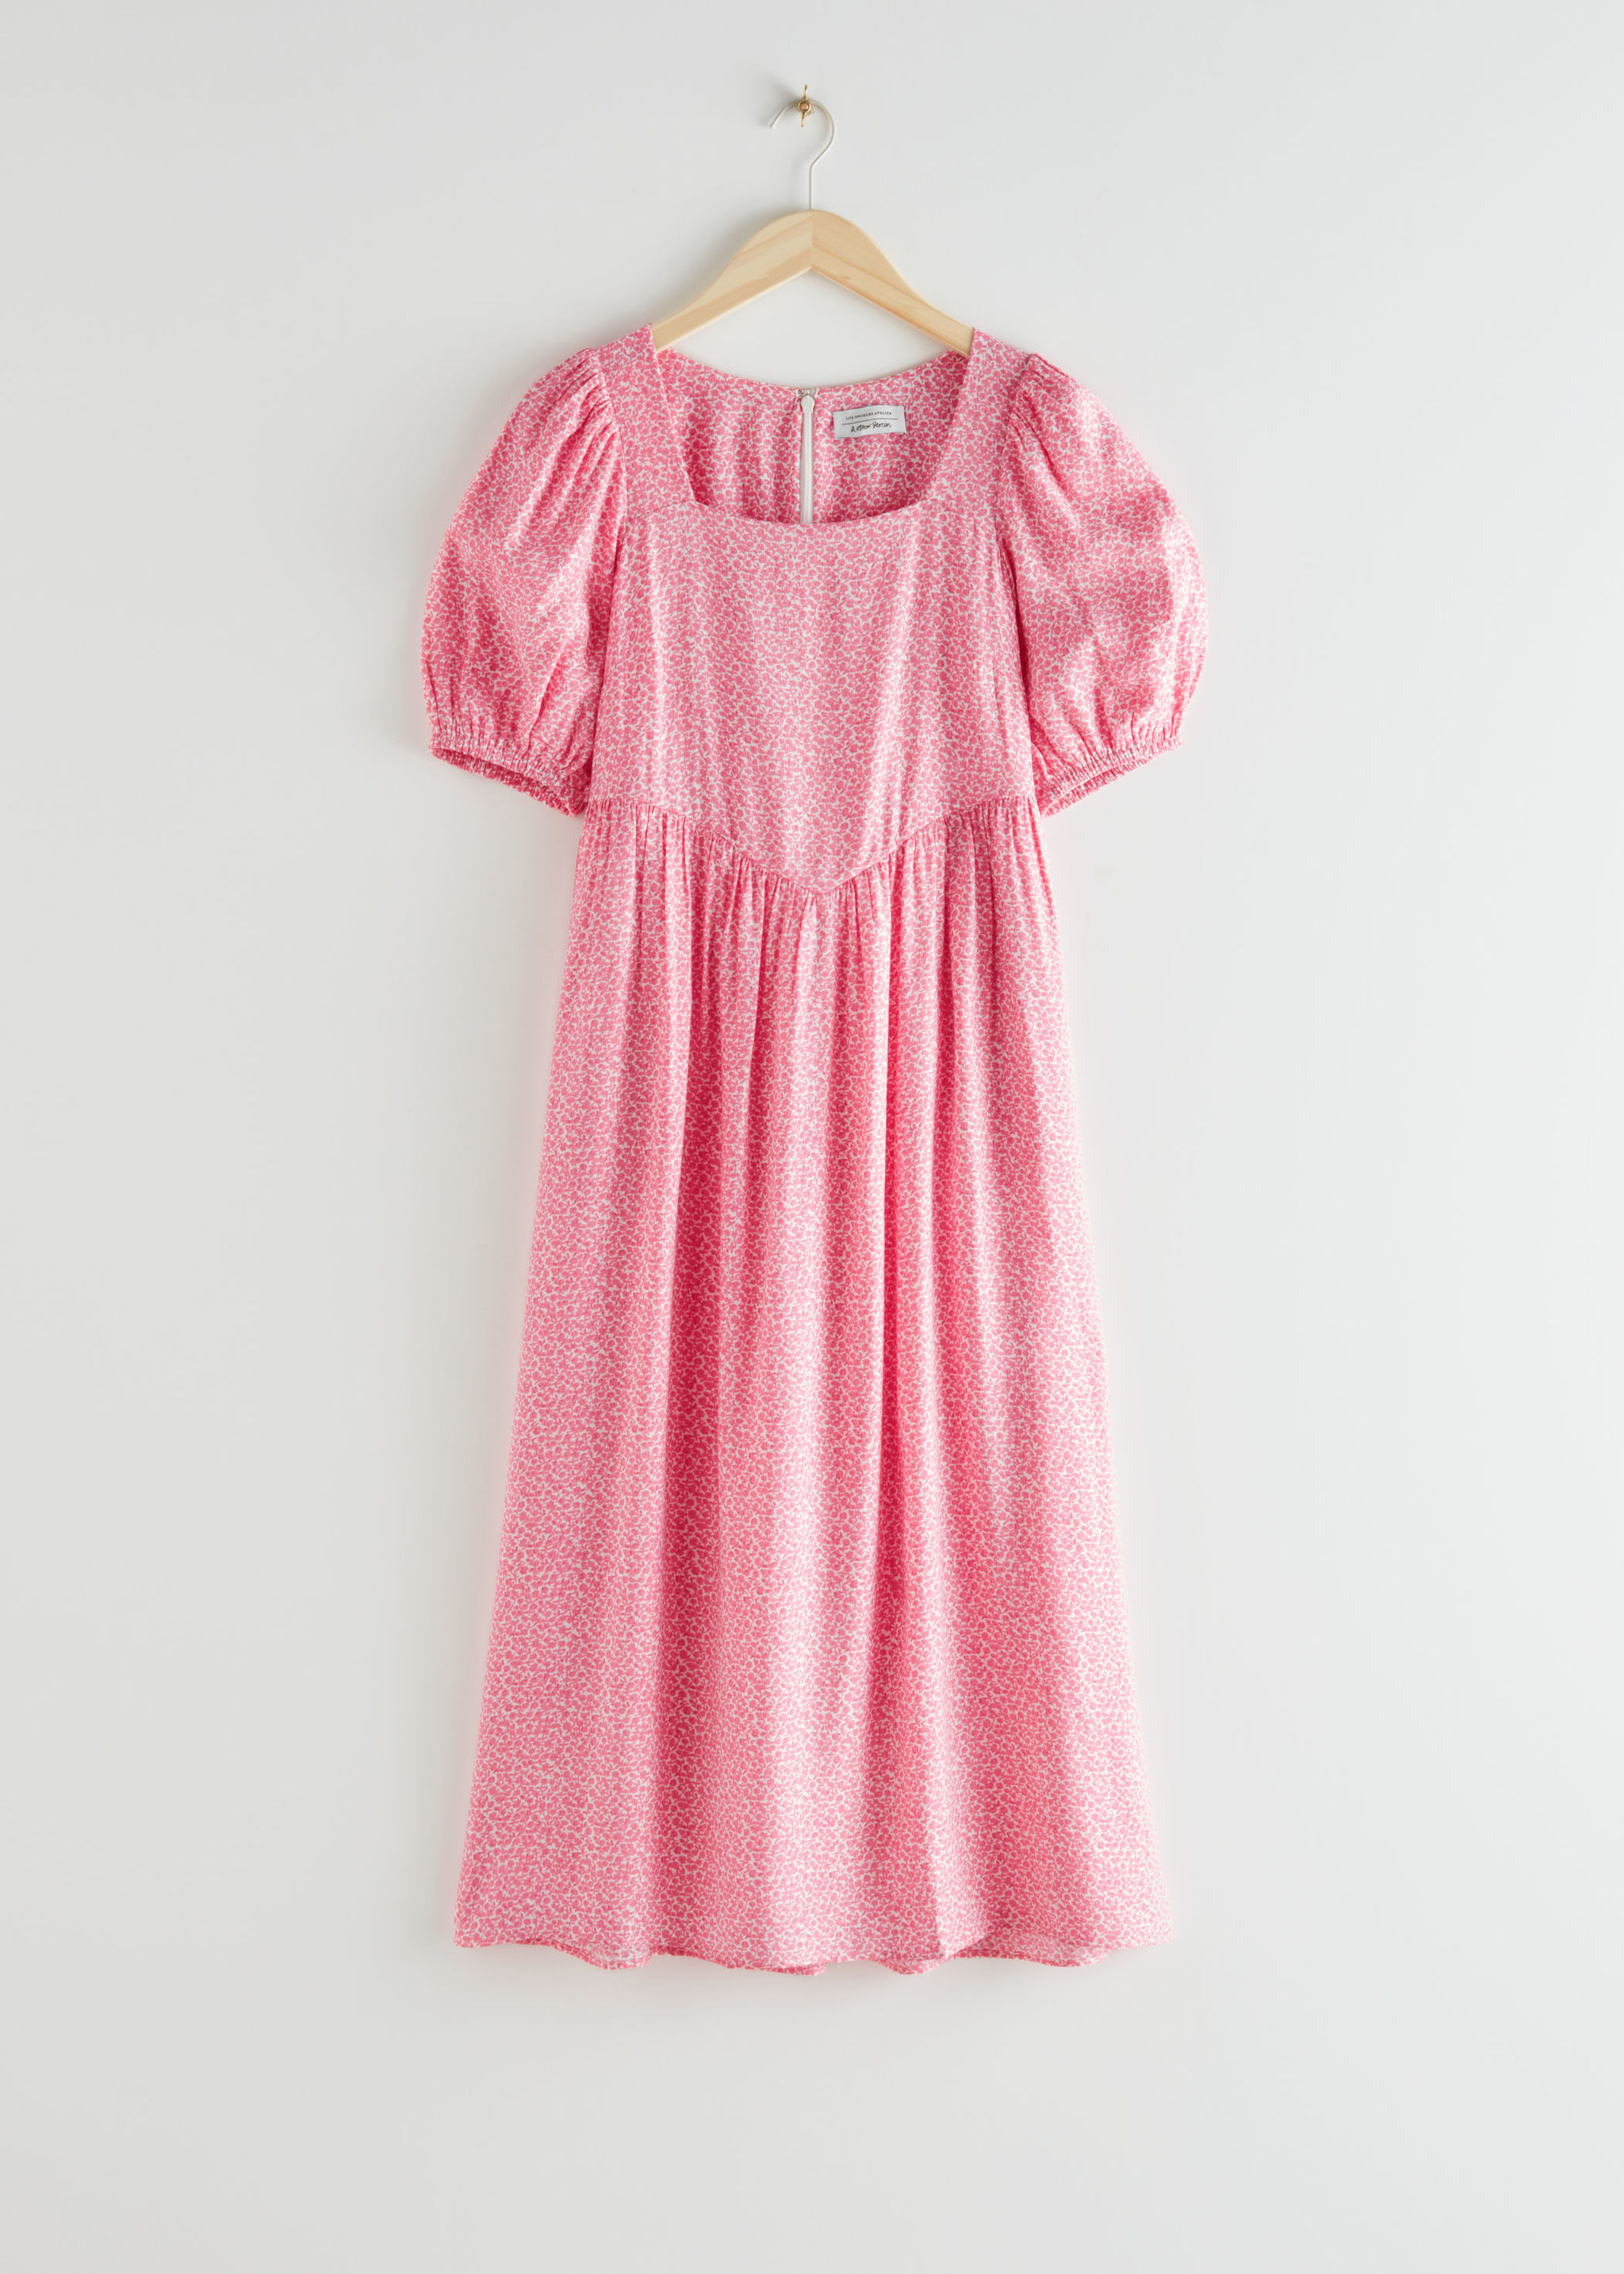 Vestido de & Other Stories (89 euros).